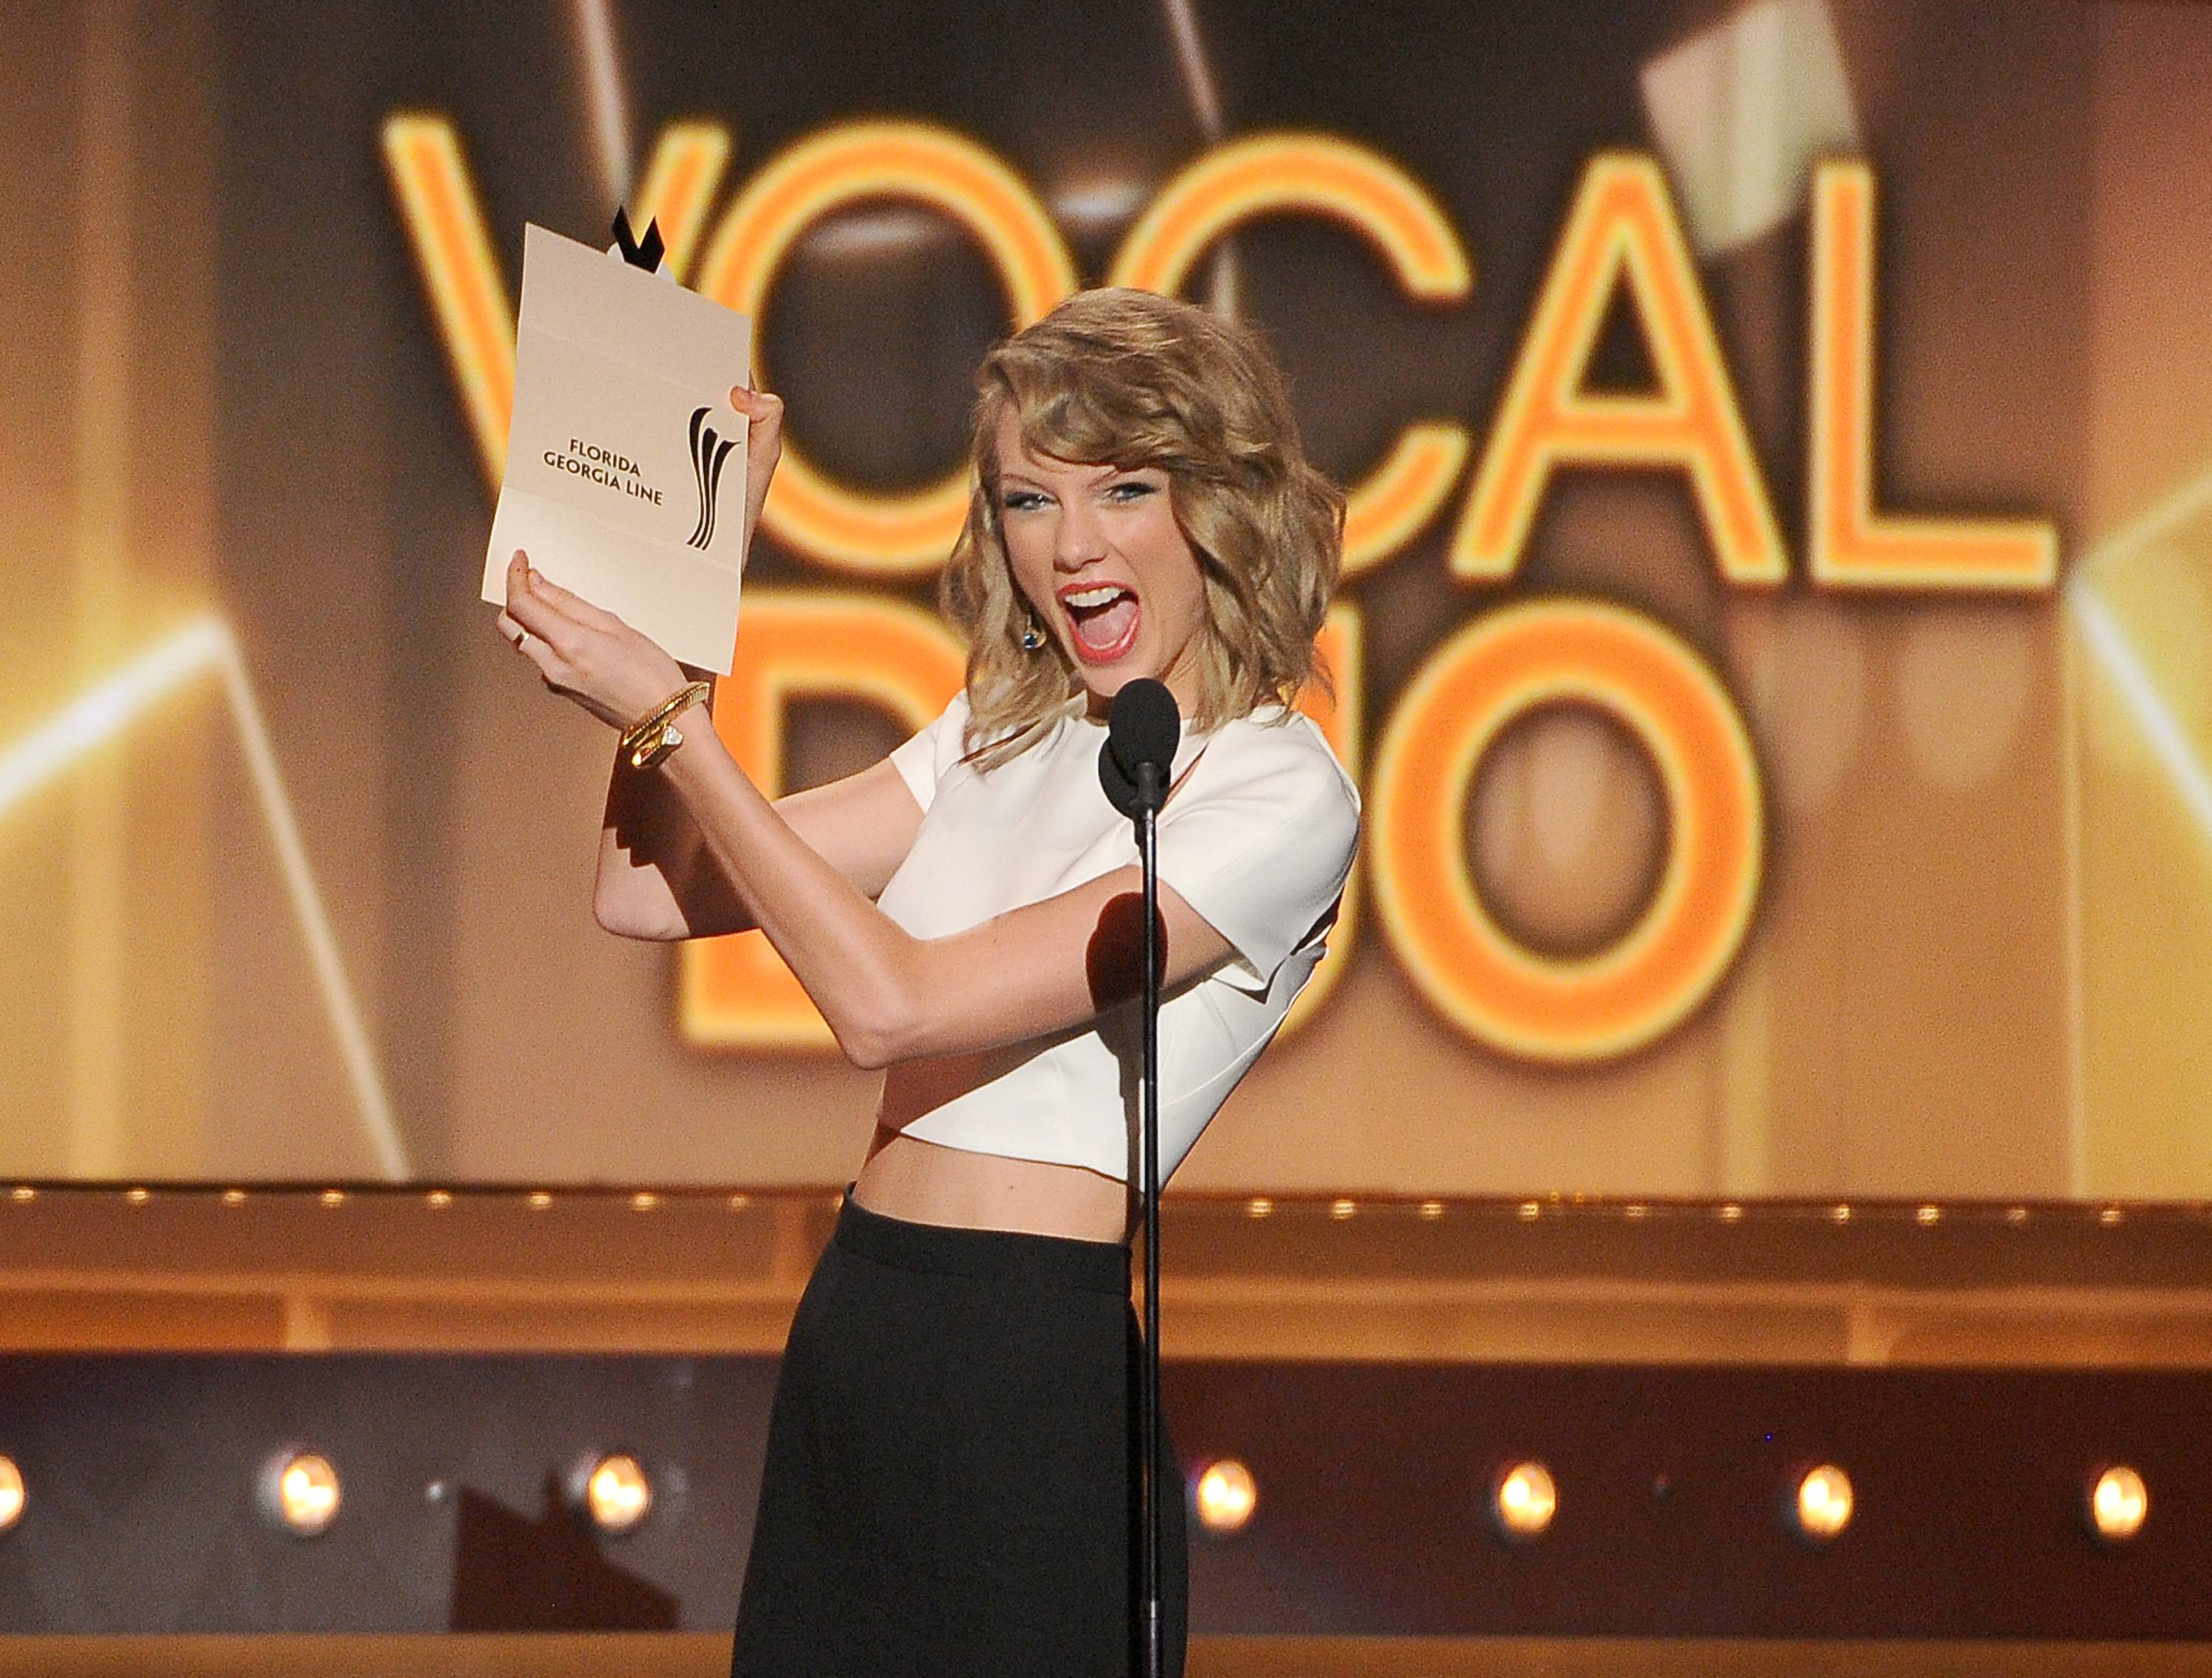 Taylor Swift presents the vocal duo of the year award to Florida Georgia Line at the 49th annual Academy of Country Music Awards.